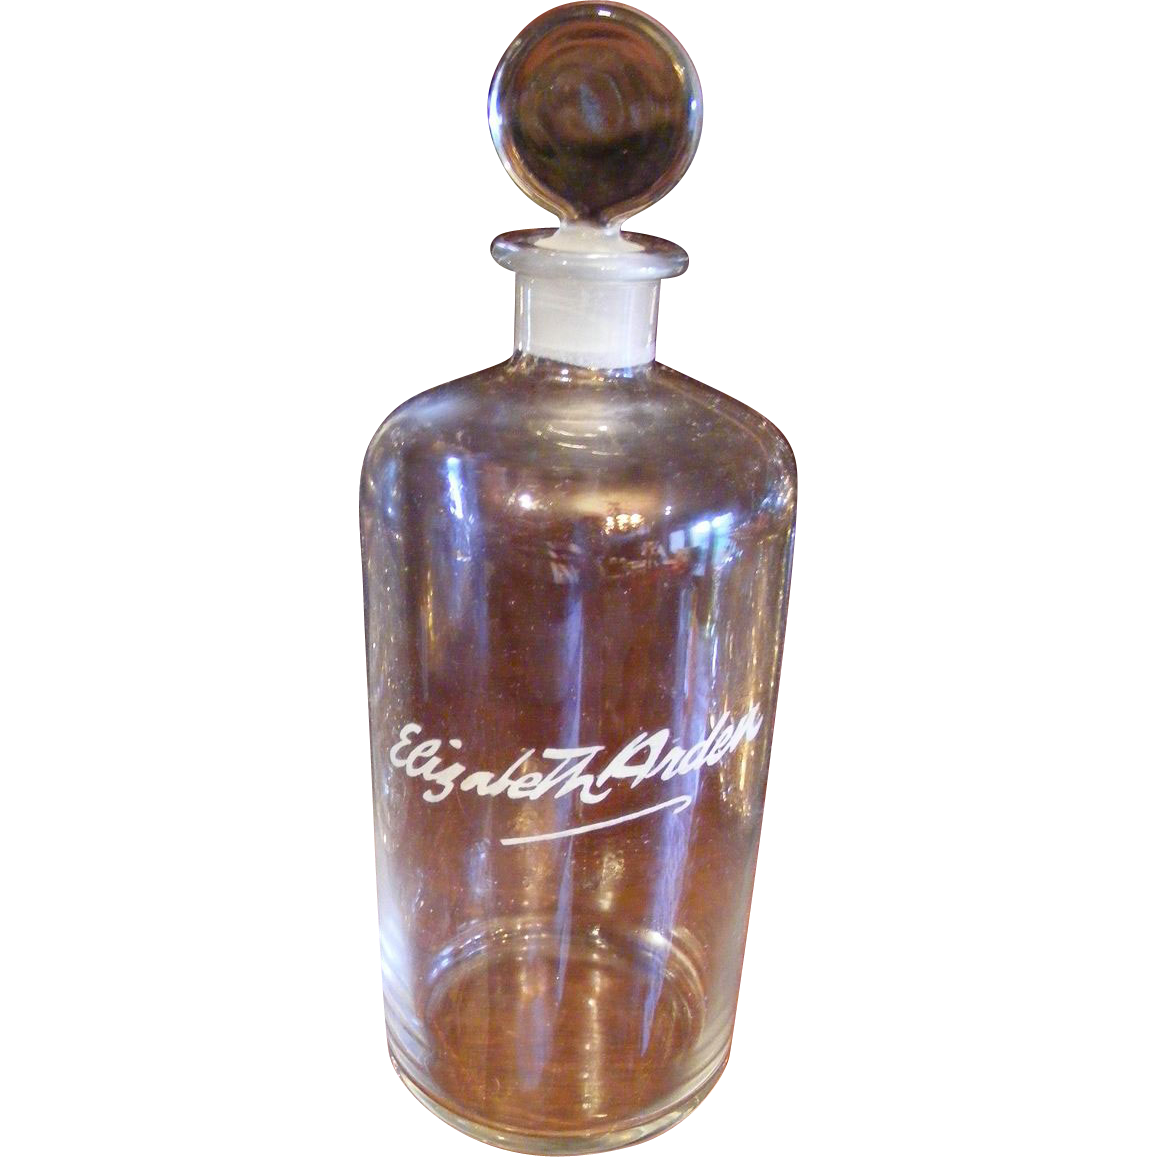 Early Elizabeth Arden Perfume bottle